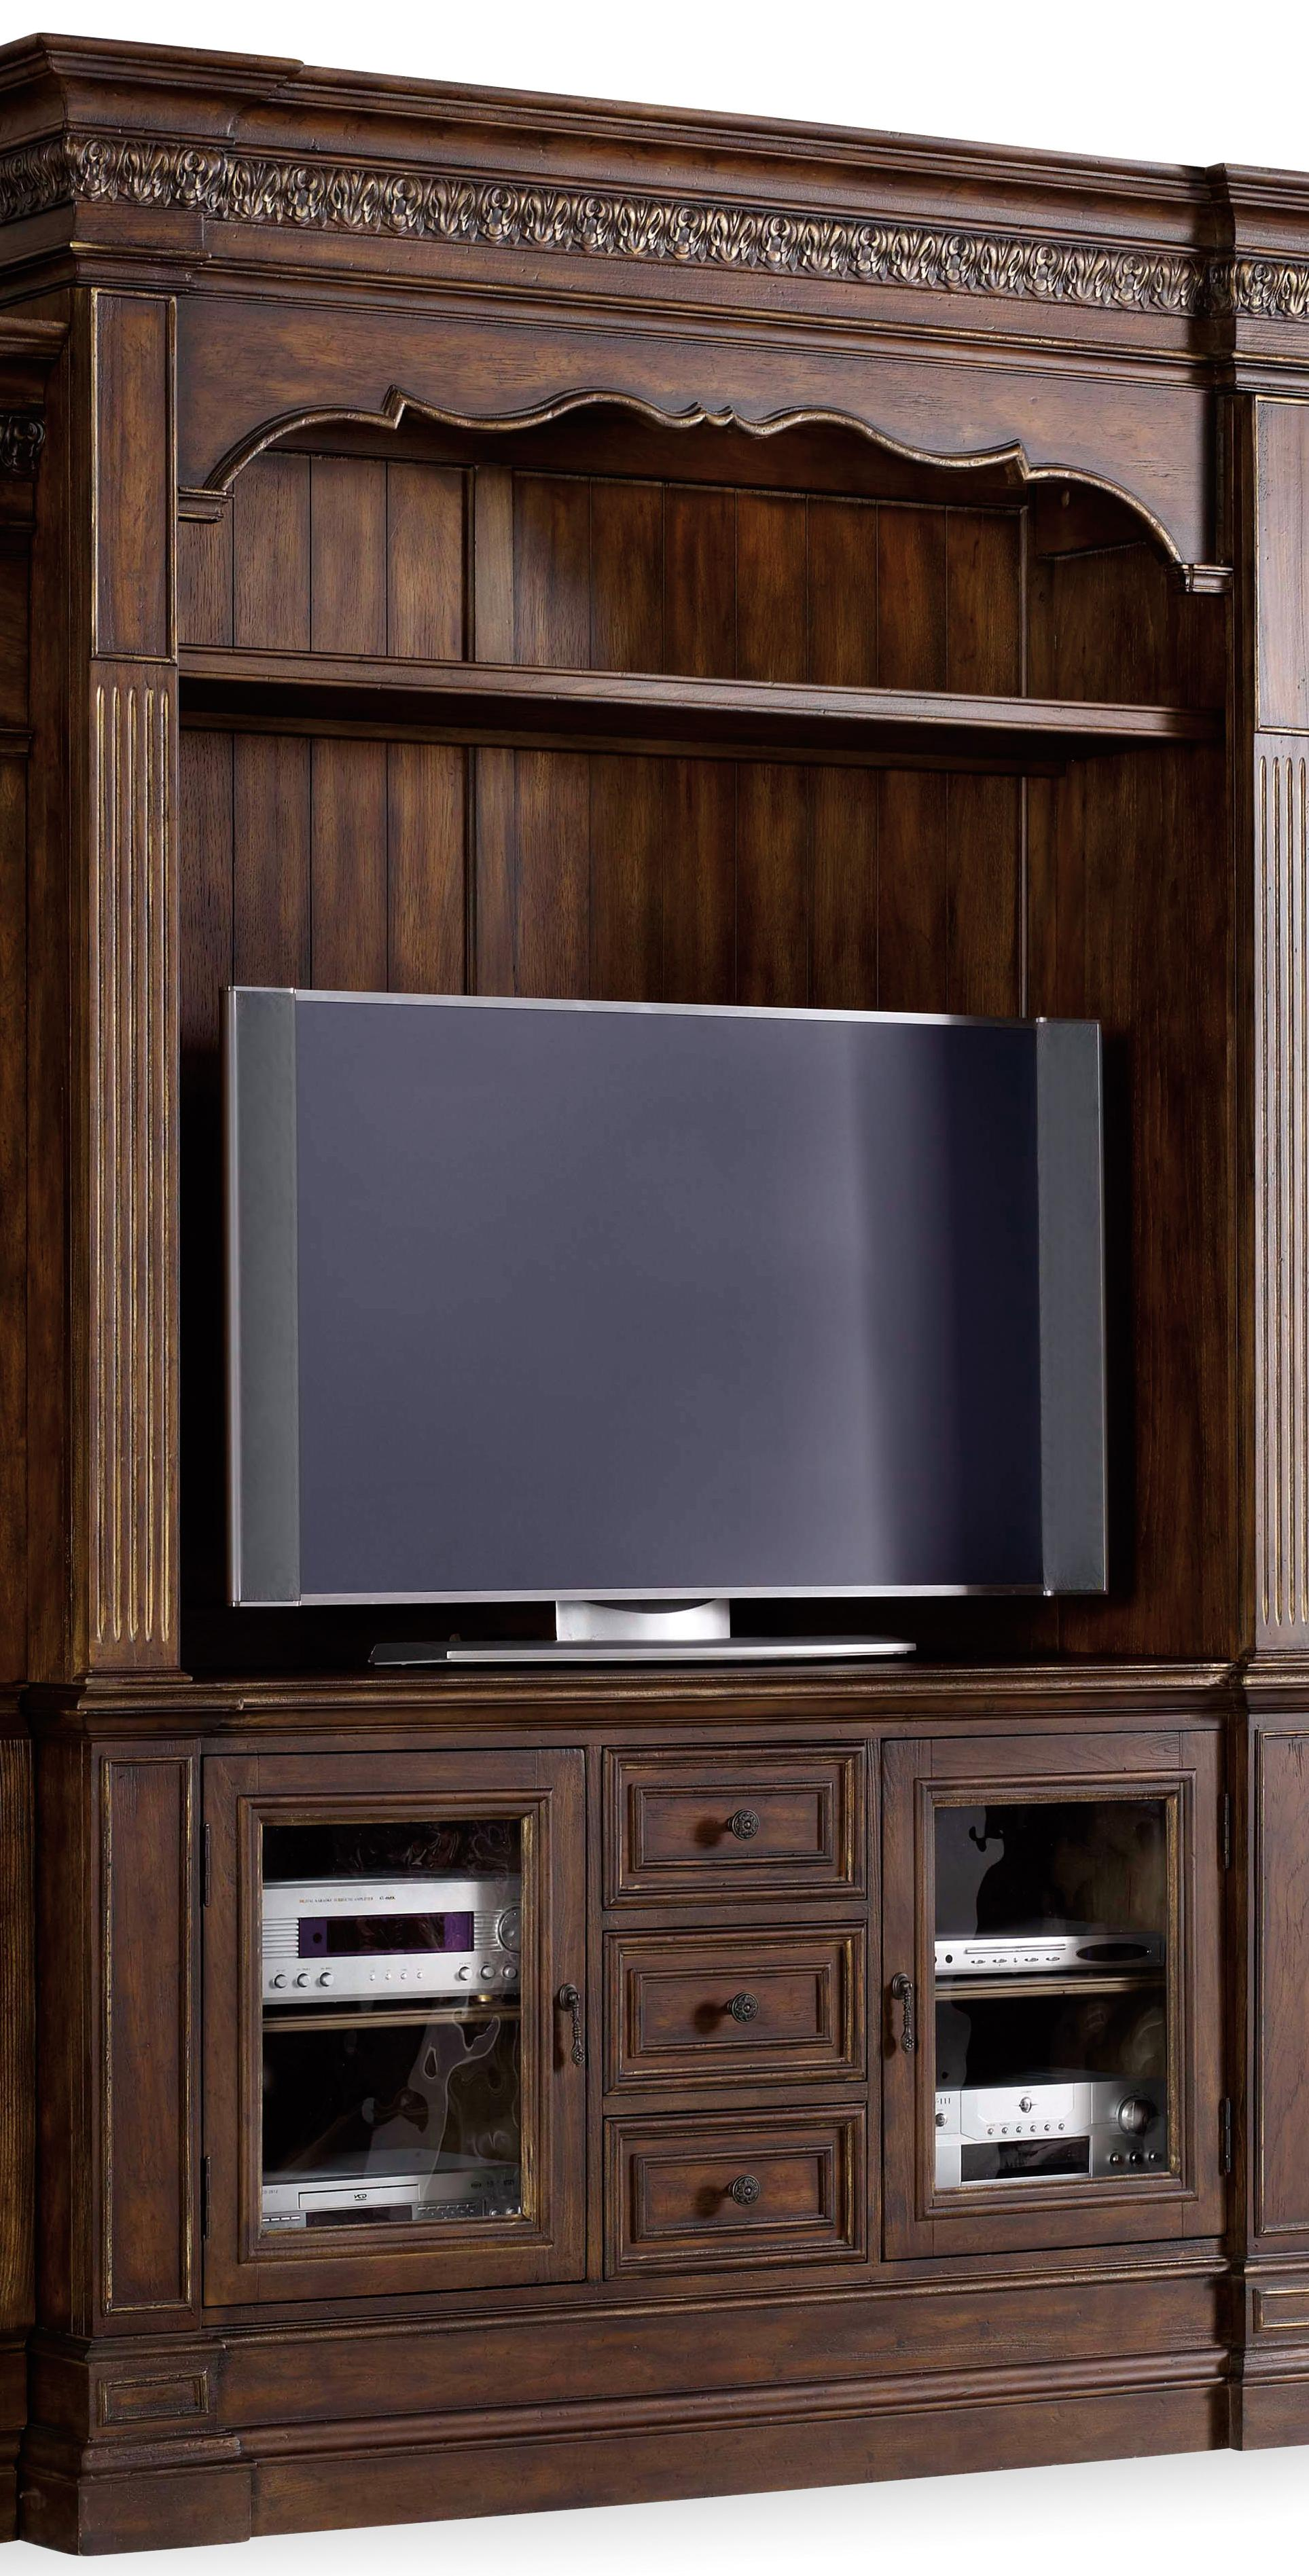 Hamilton Home Adagio Entertainment Console with Hutch - Item Number: 5091-70465+503